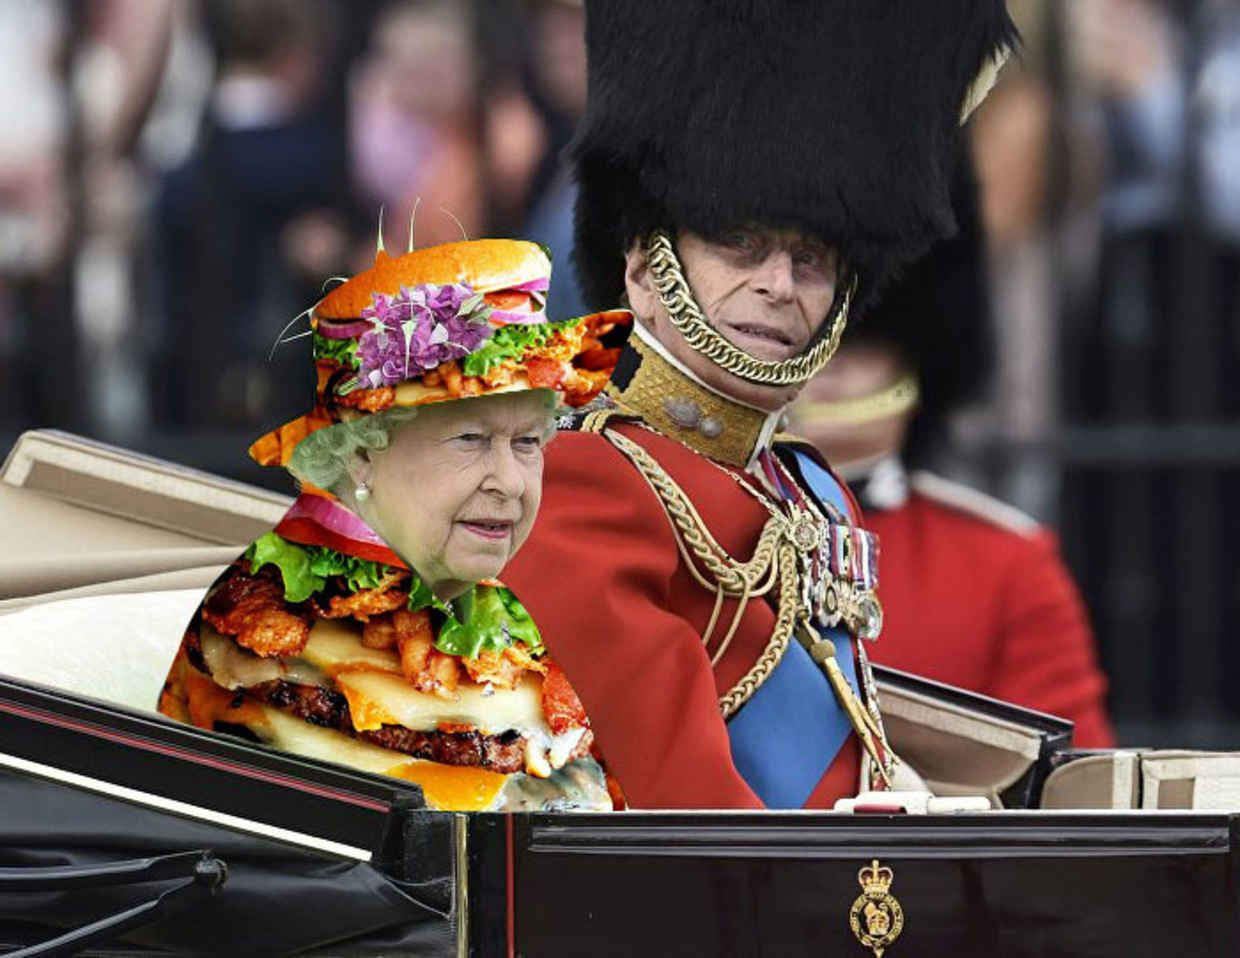 The Internet Reacted To The Queens Green Birthday Outfit In The Funniest Way Imaginable Neon Green Outfits Queen Meme Royal Costume [ 958 x 1240 Pixel ]